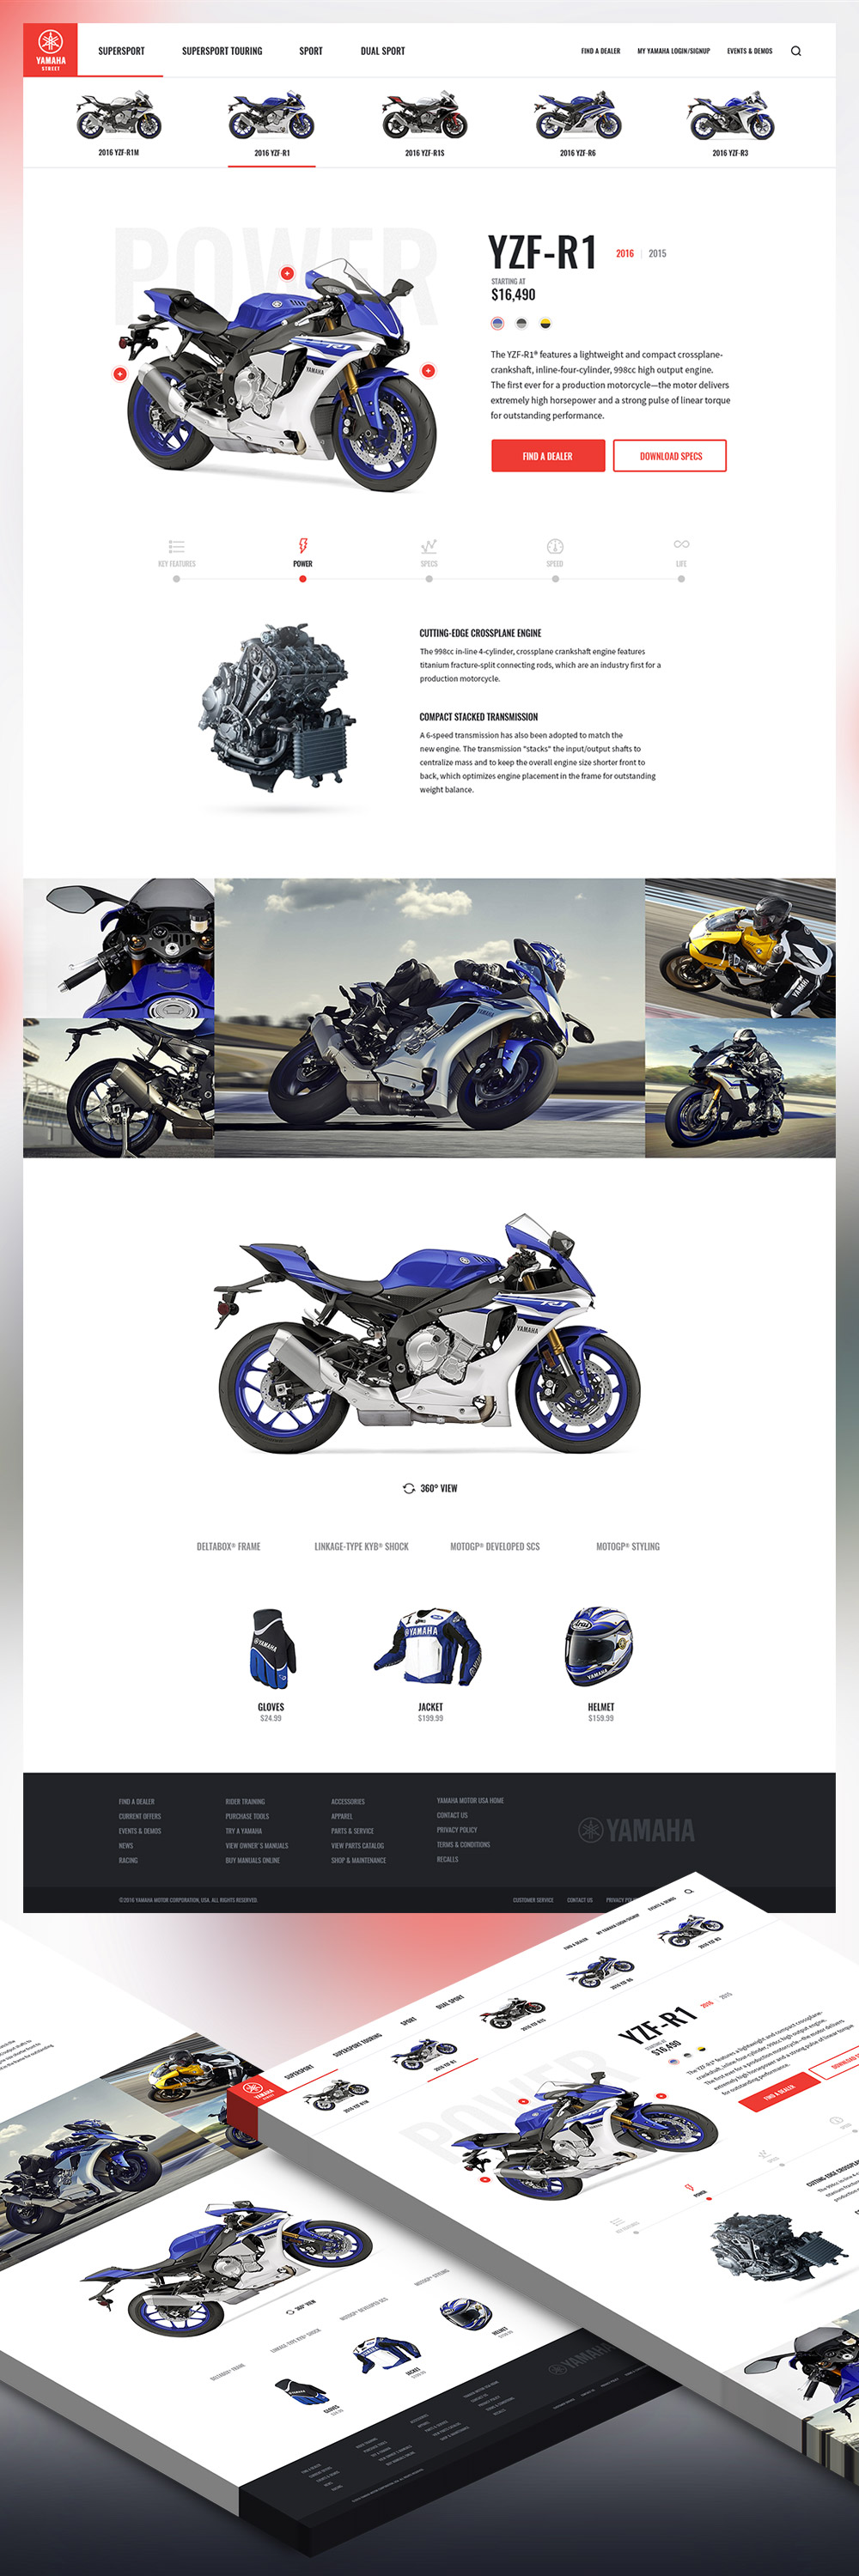 cool motor bike shop free psd website template download motor bike